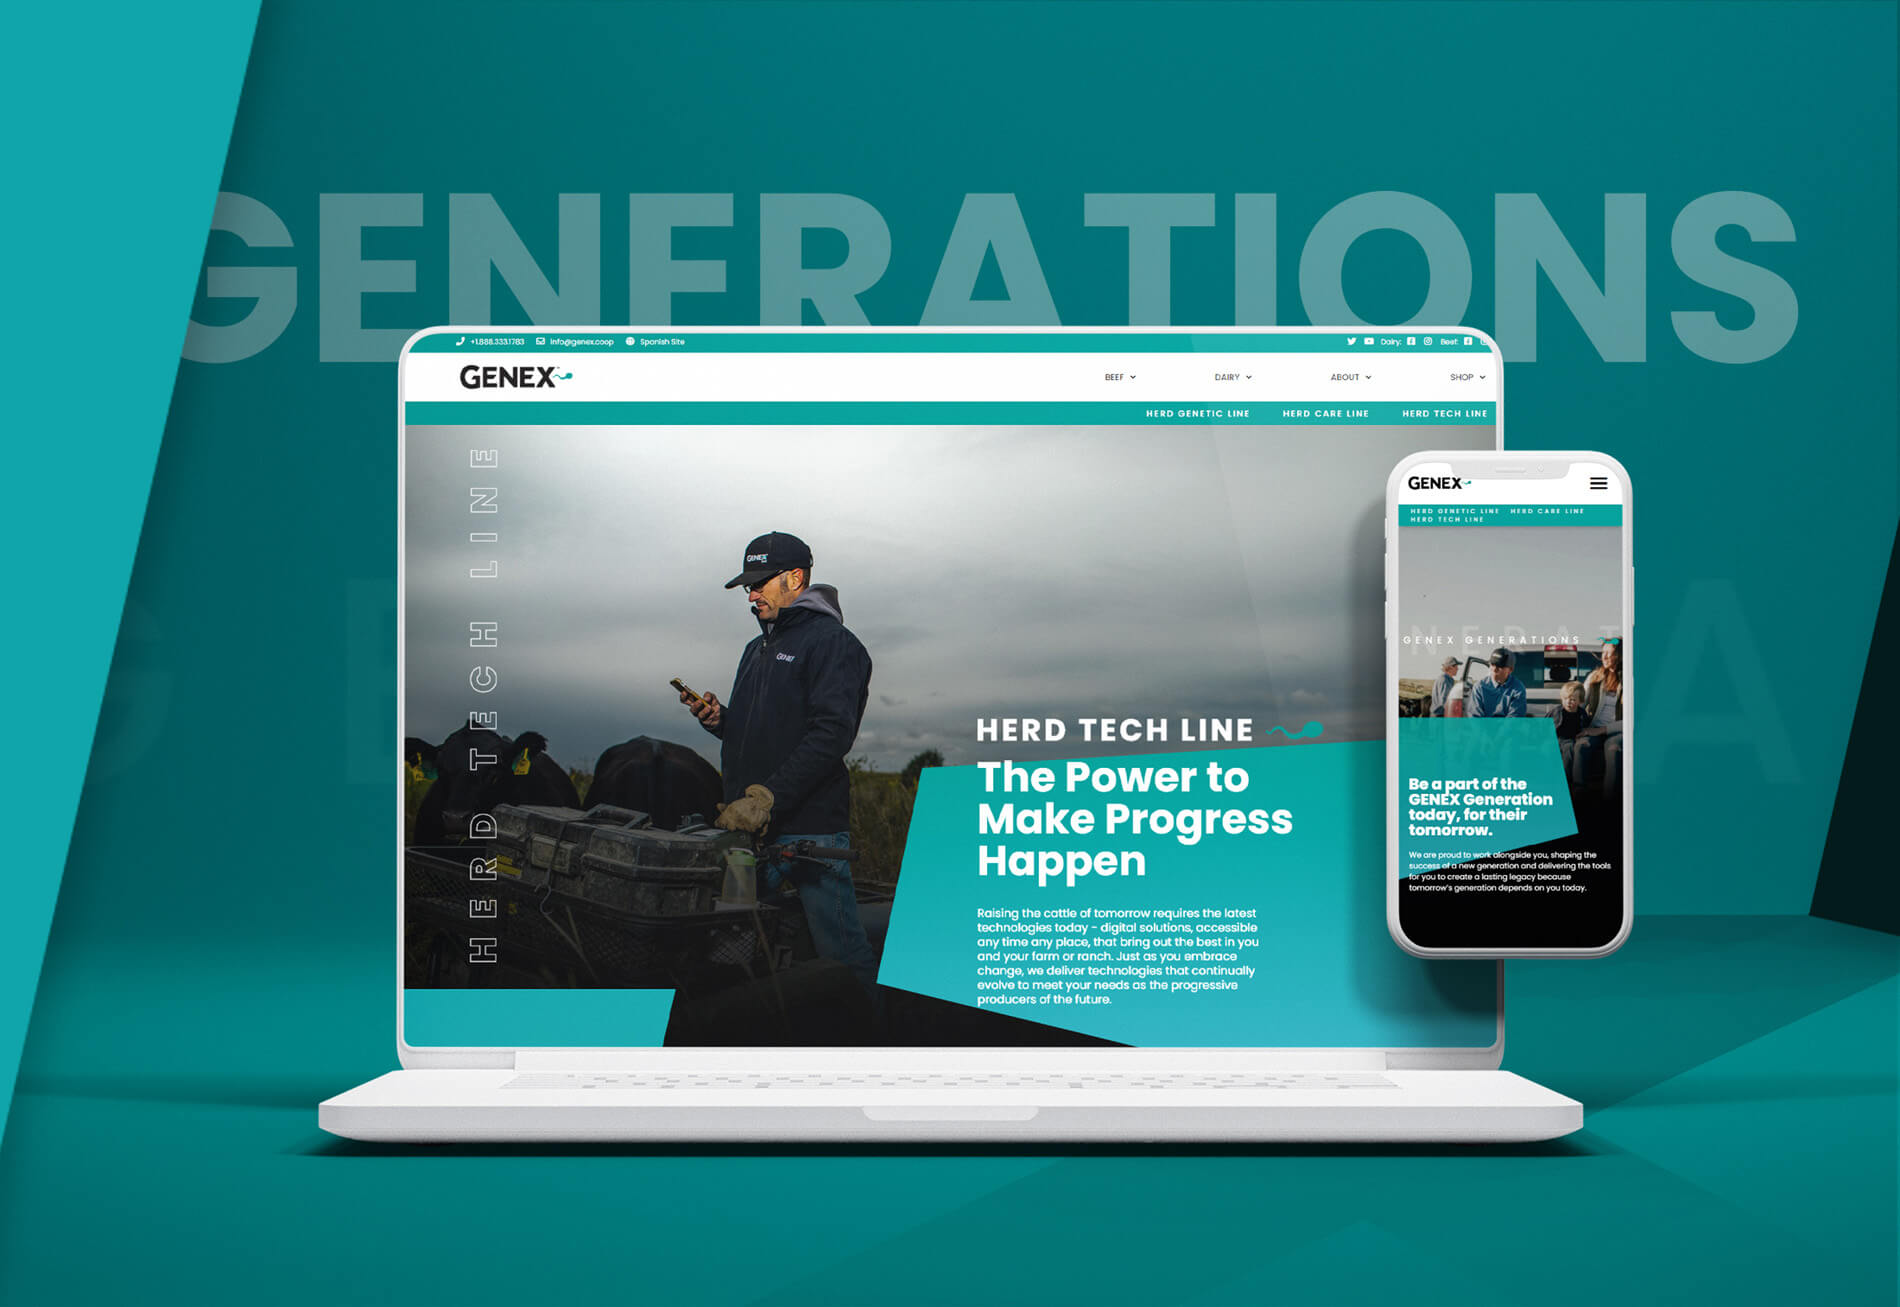 genex-generations-company-website-redesign (1)